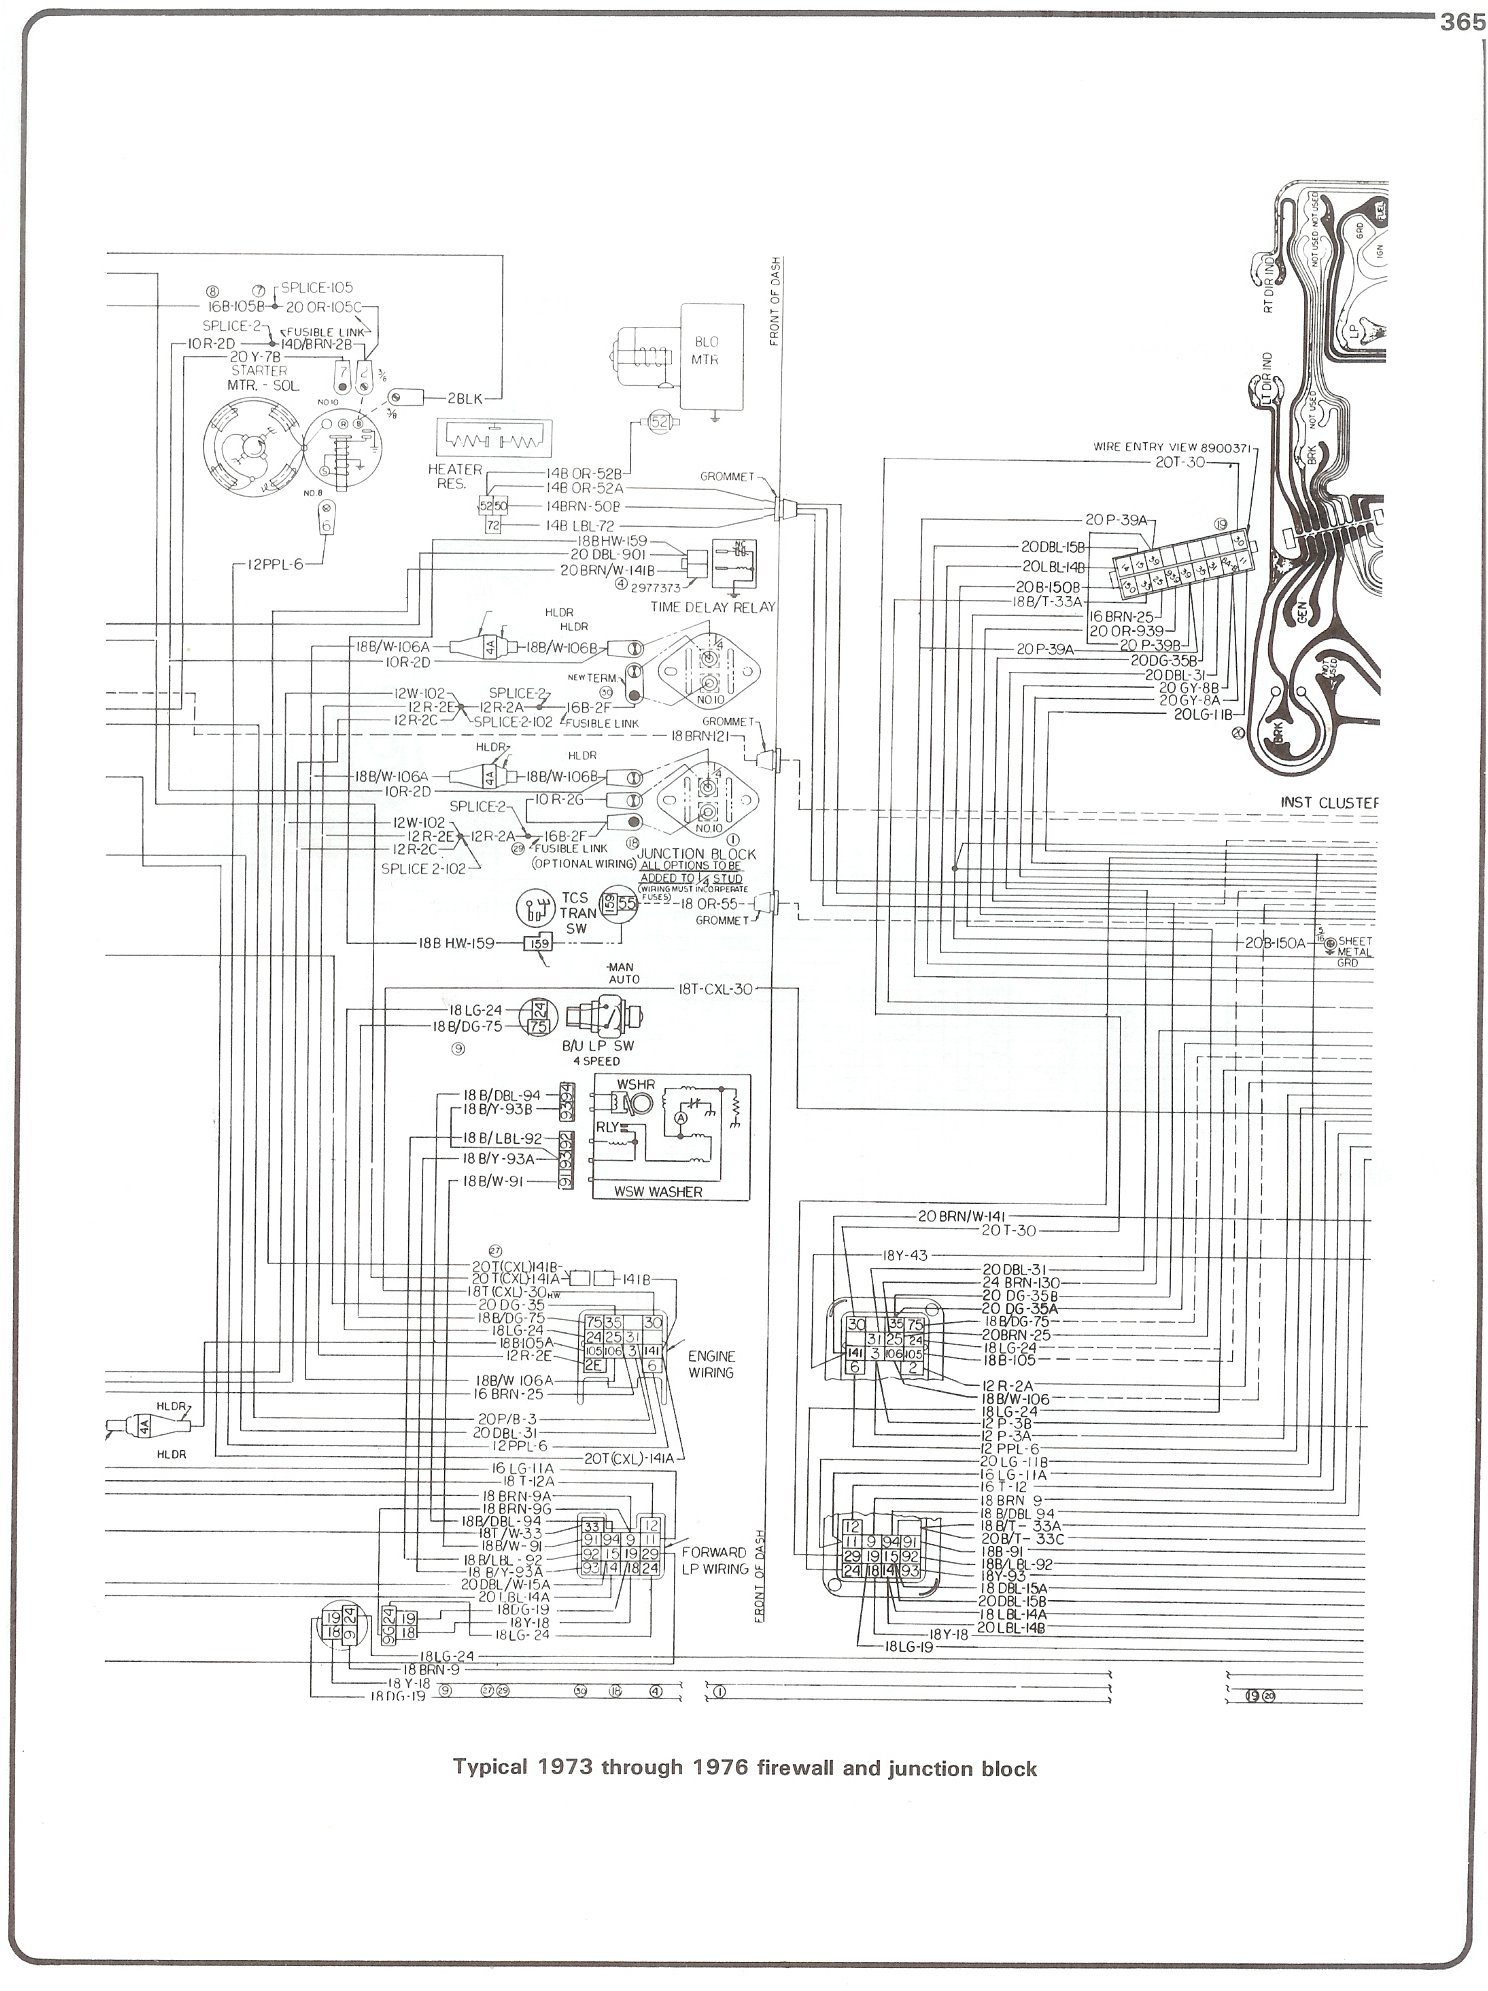 hight resolution of 76 chevy engine wiring harness diagram wiring library 1982 chevy s10 durango 1982 chevy s10 firewall wiring diagram